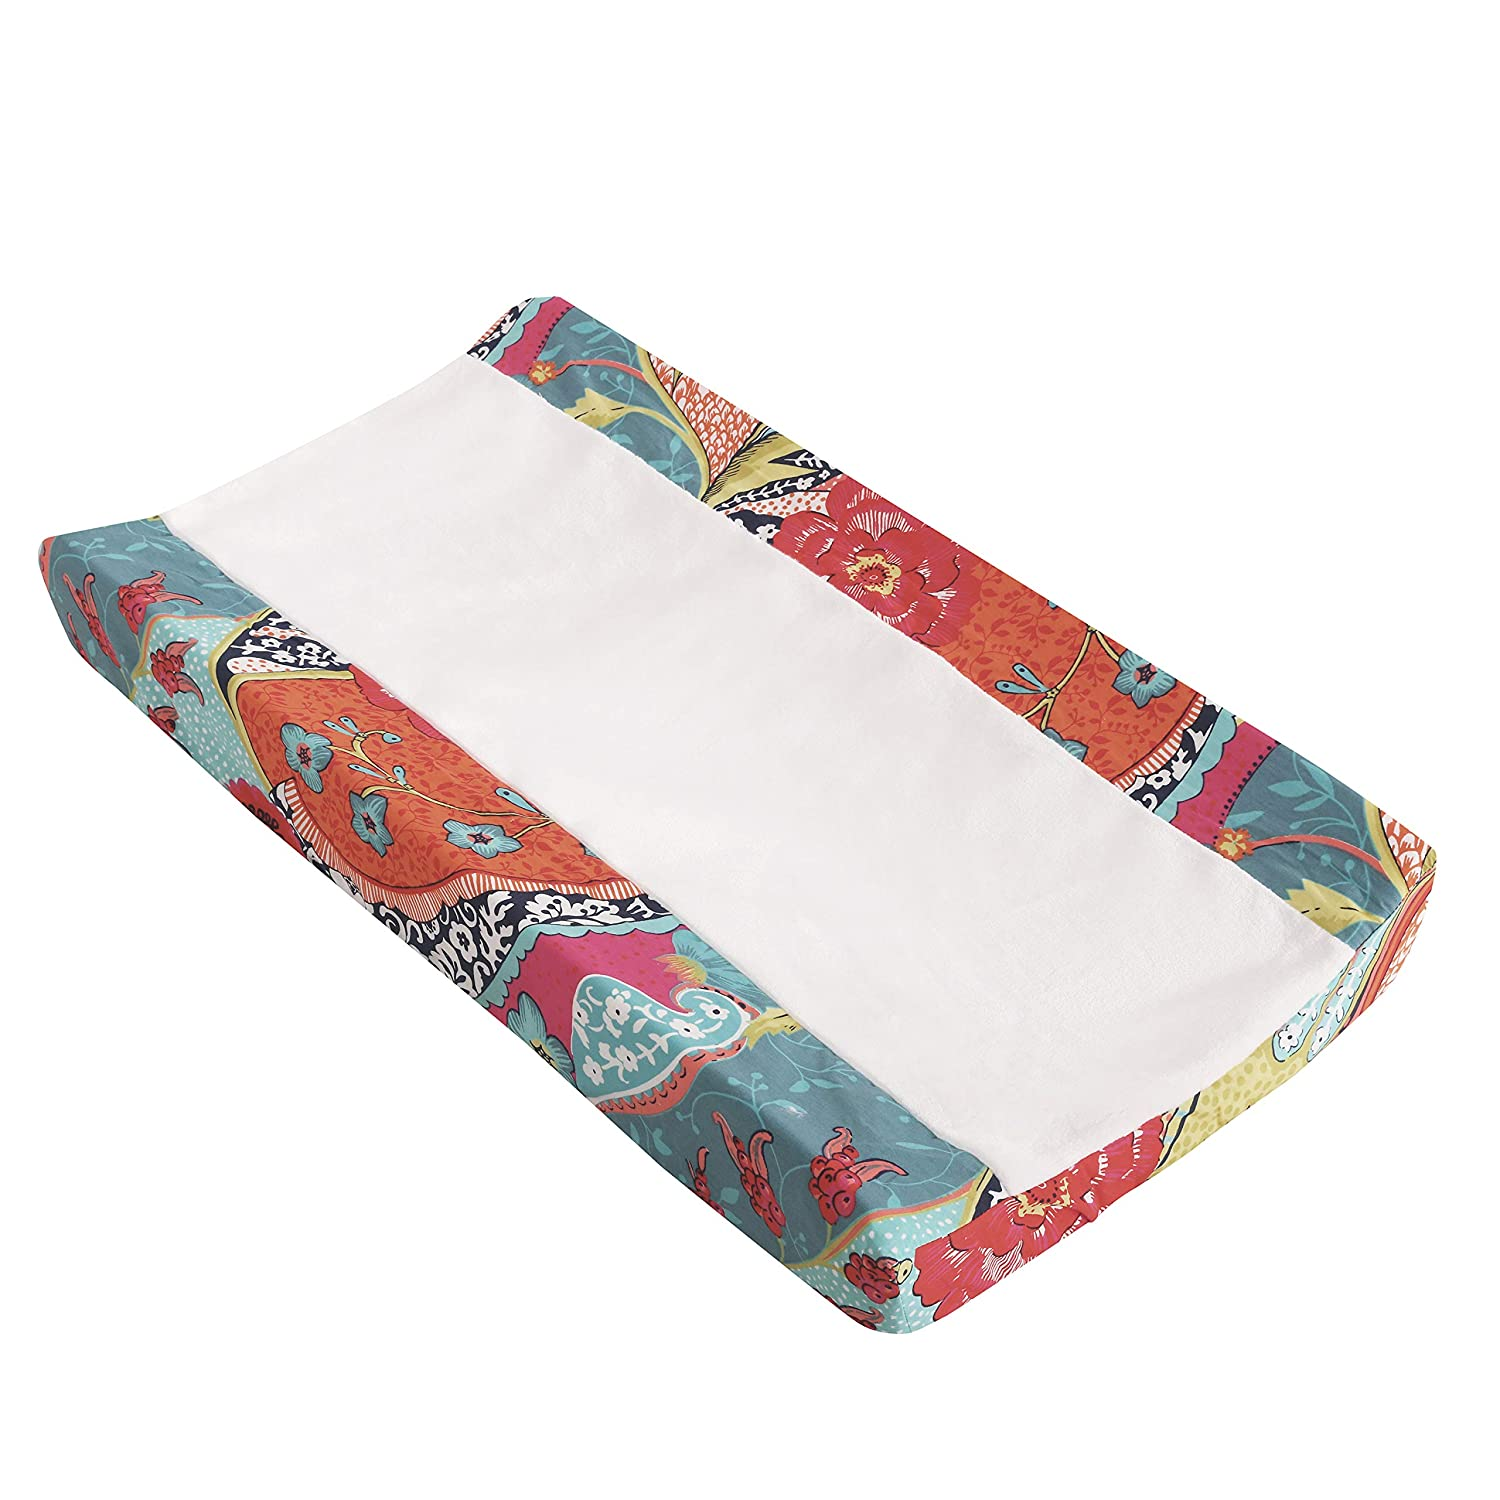 Levtex Baby - Camille Changing Pad Cover - Tossed Owls and Trees Multicolor - Nursery Accessories - Fits Most Standard Changing Pads